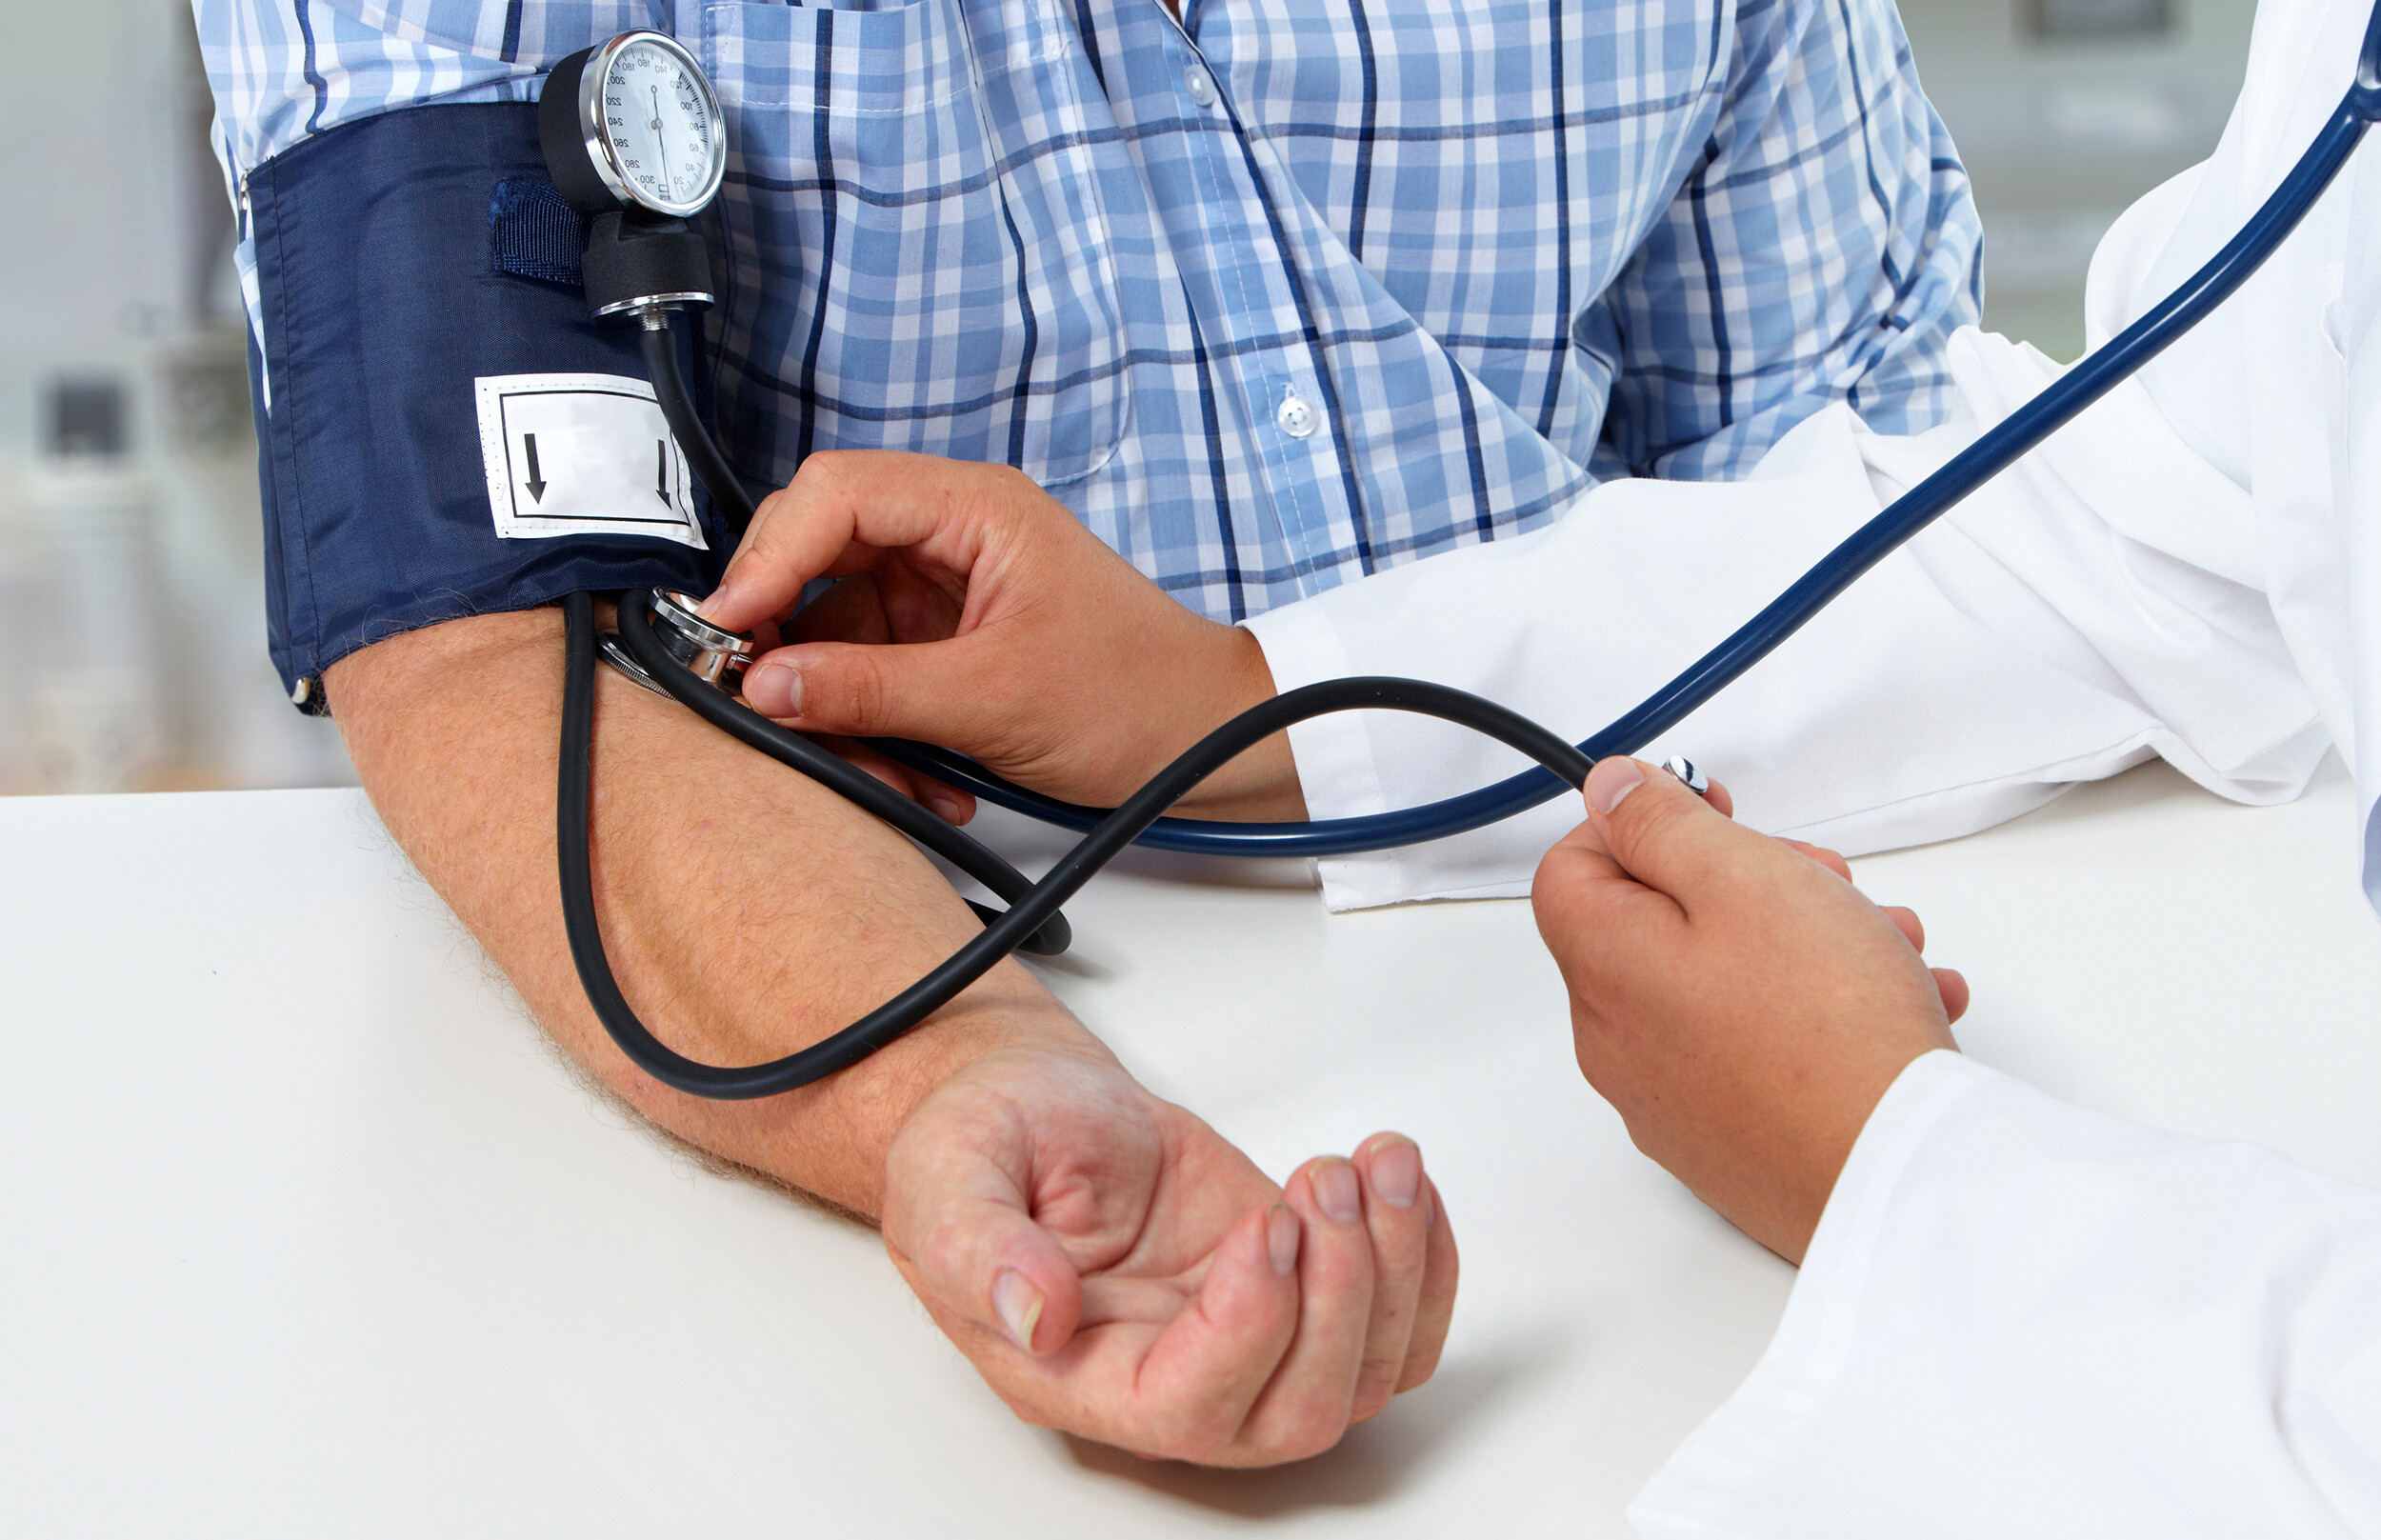 Number of people with high blood pressure has doubled globally, large study finds